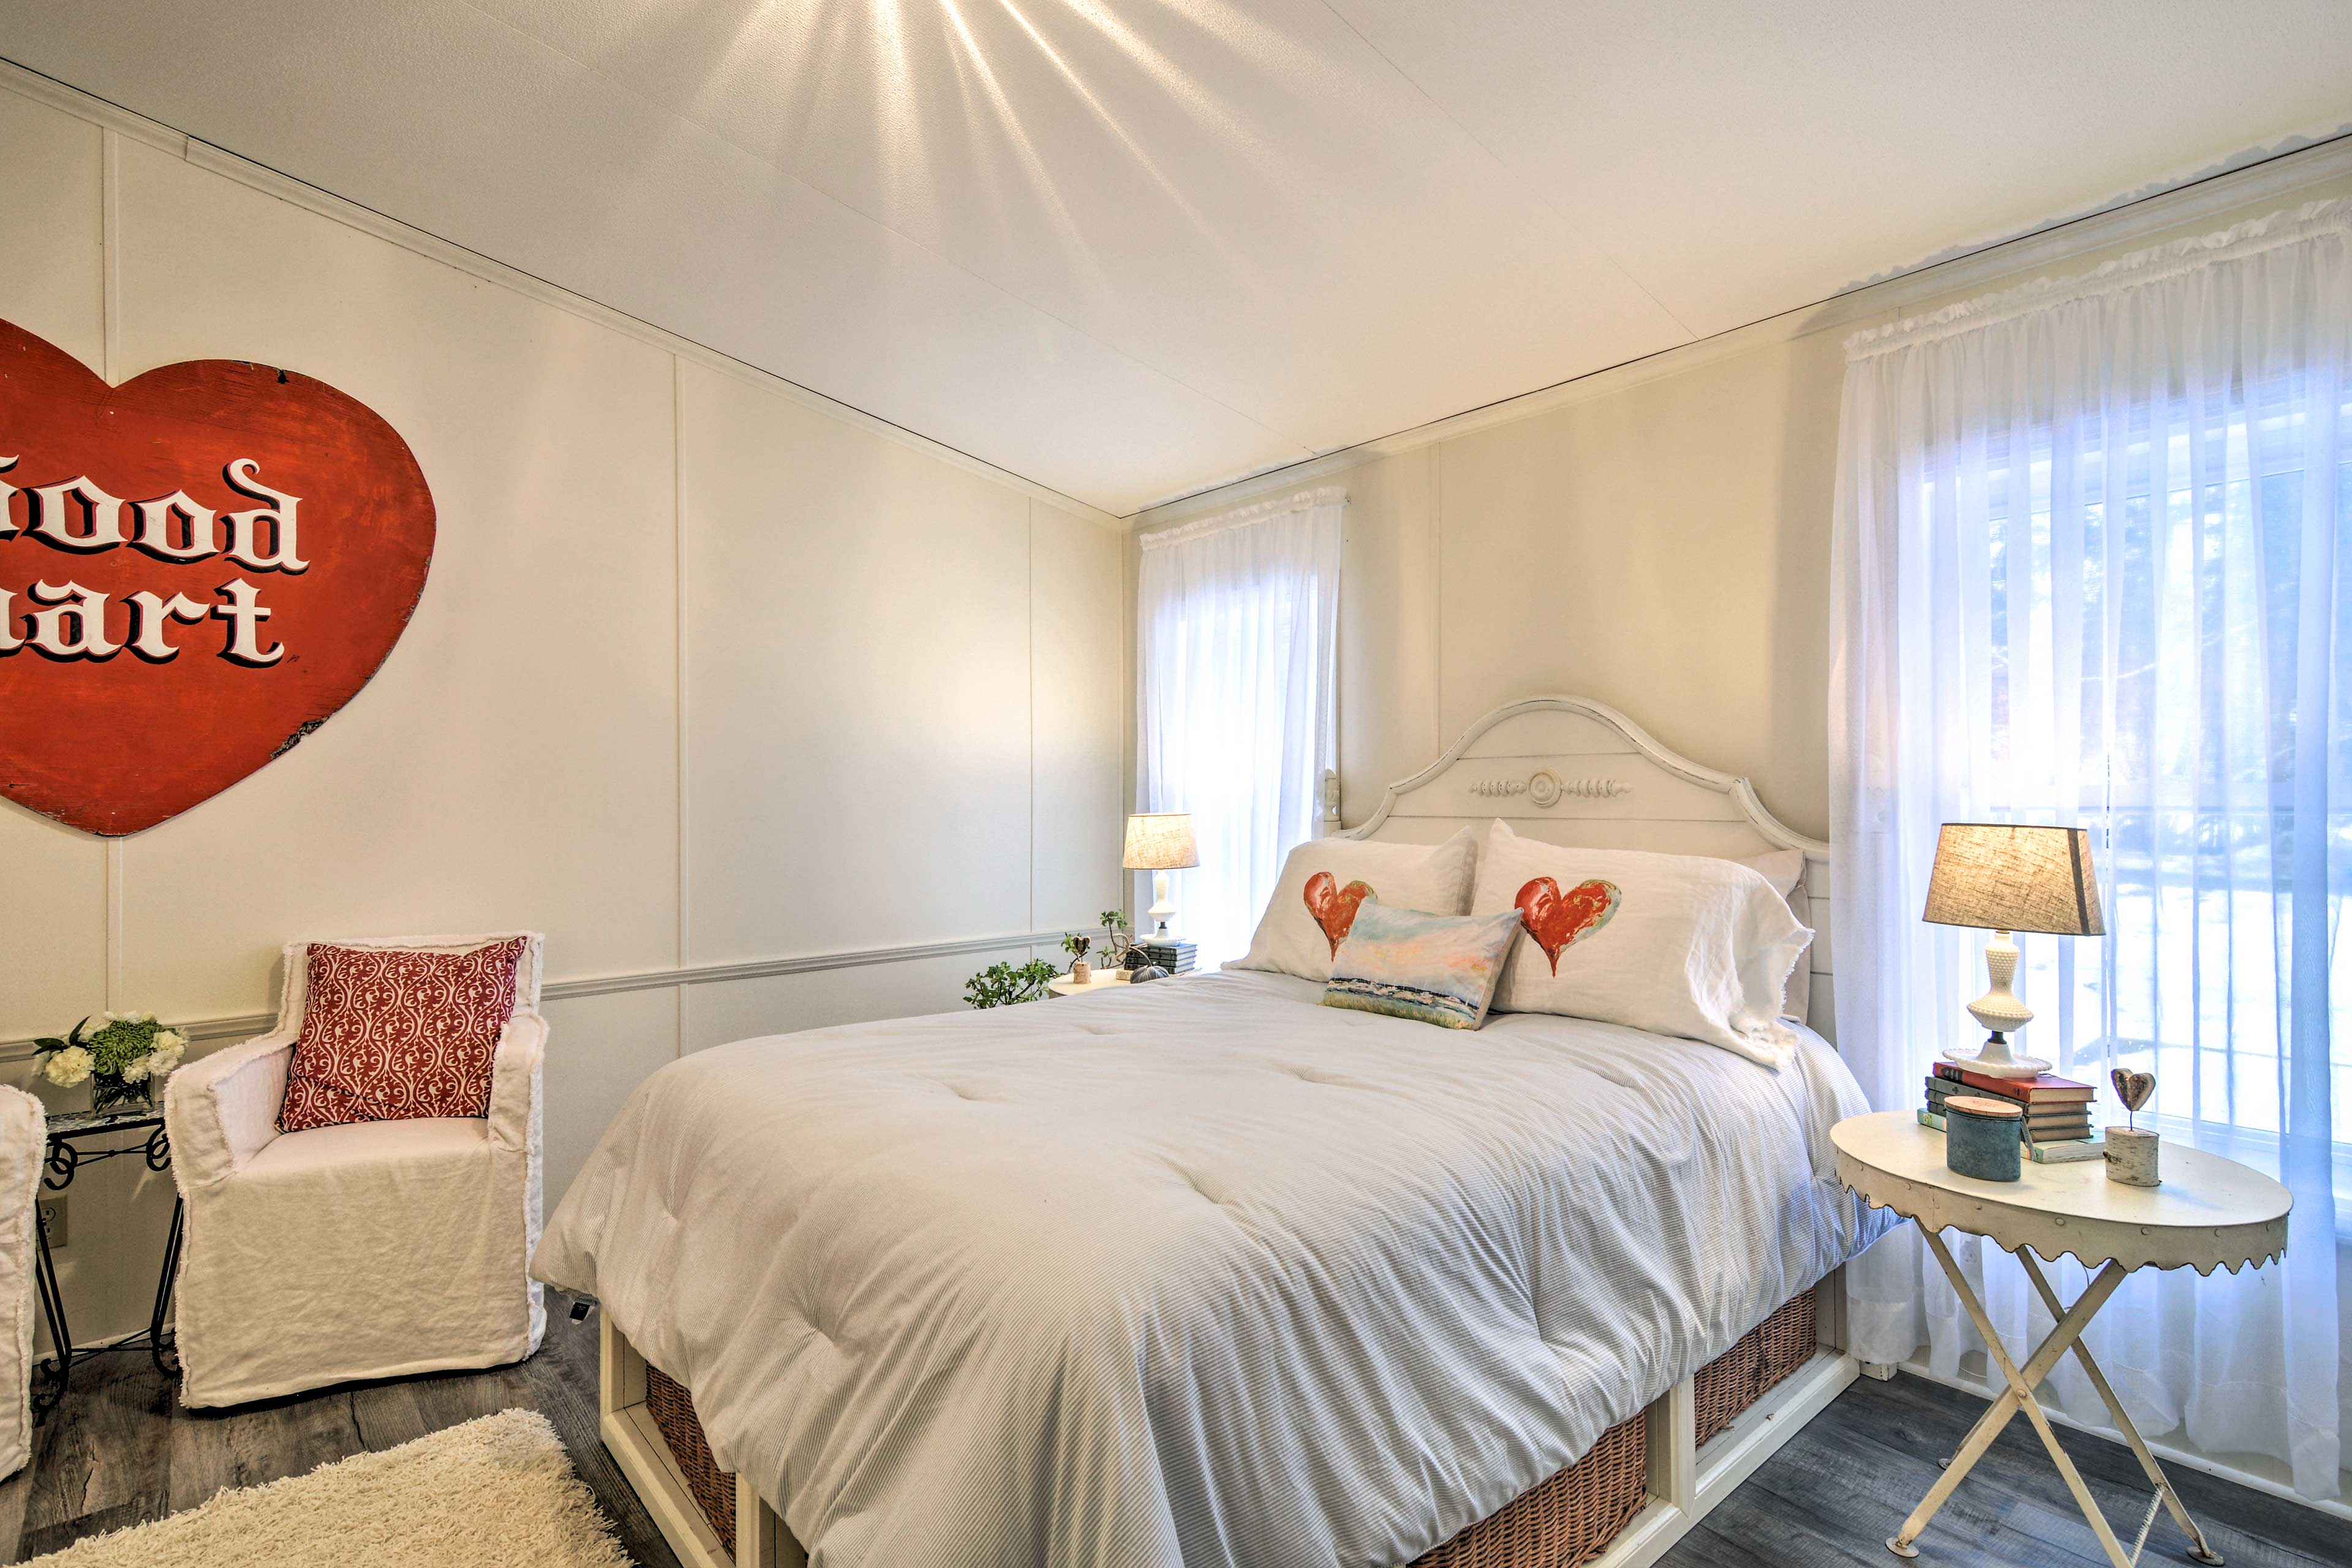 Couples with love this stylish room!